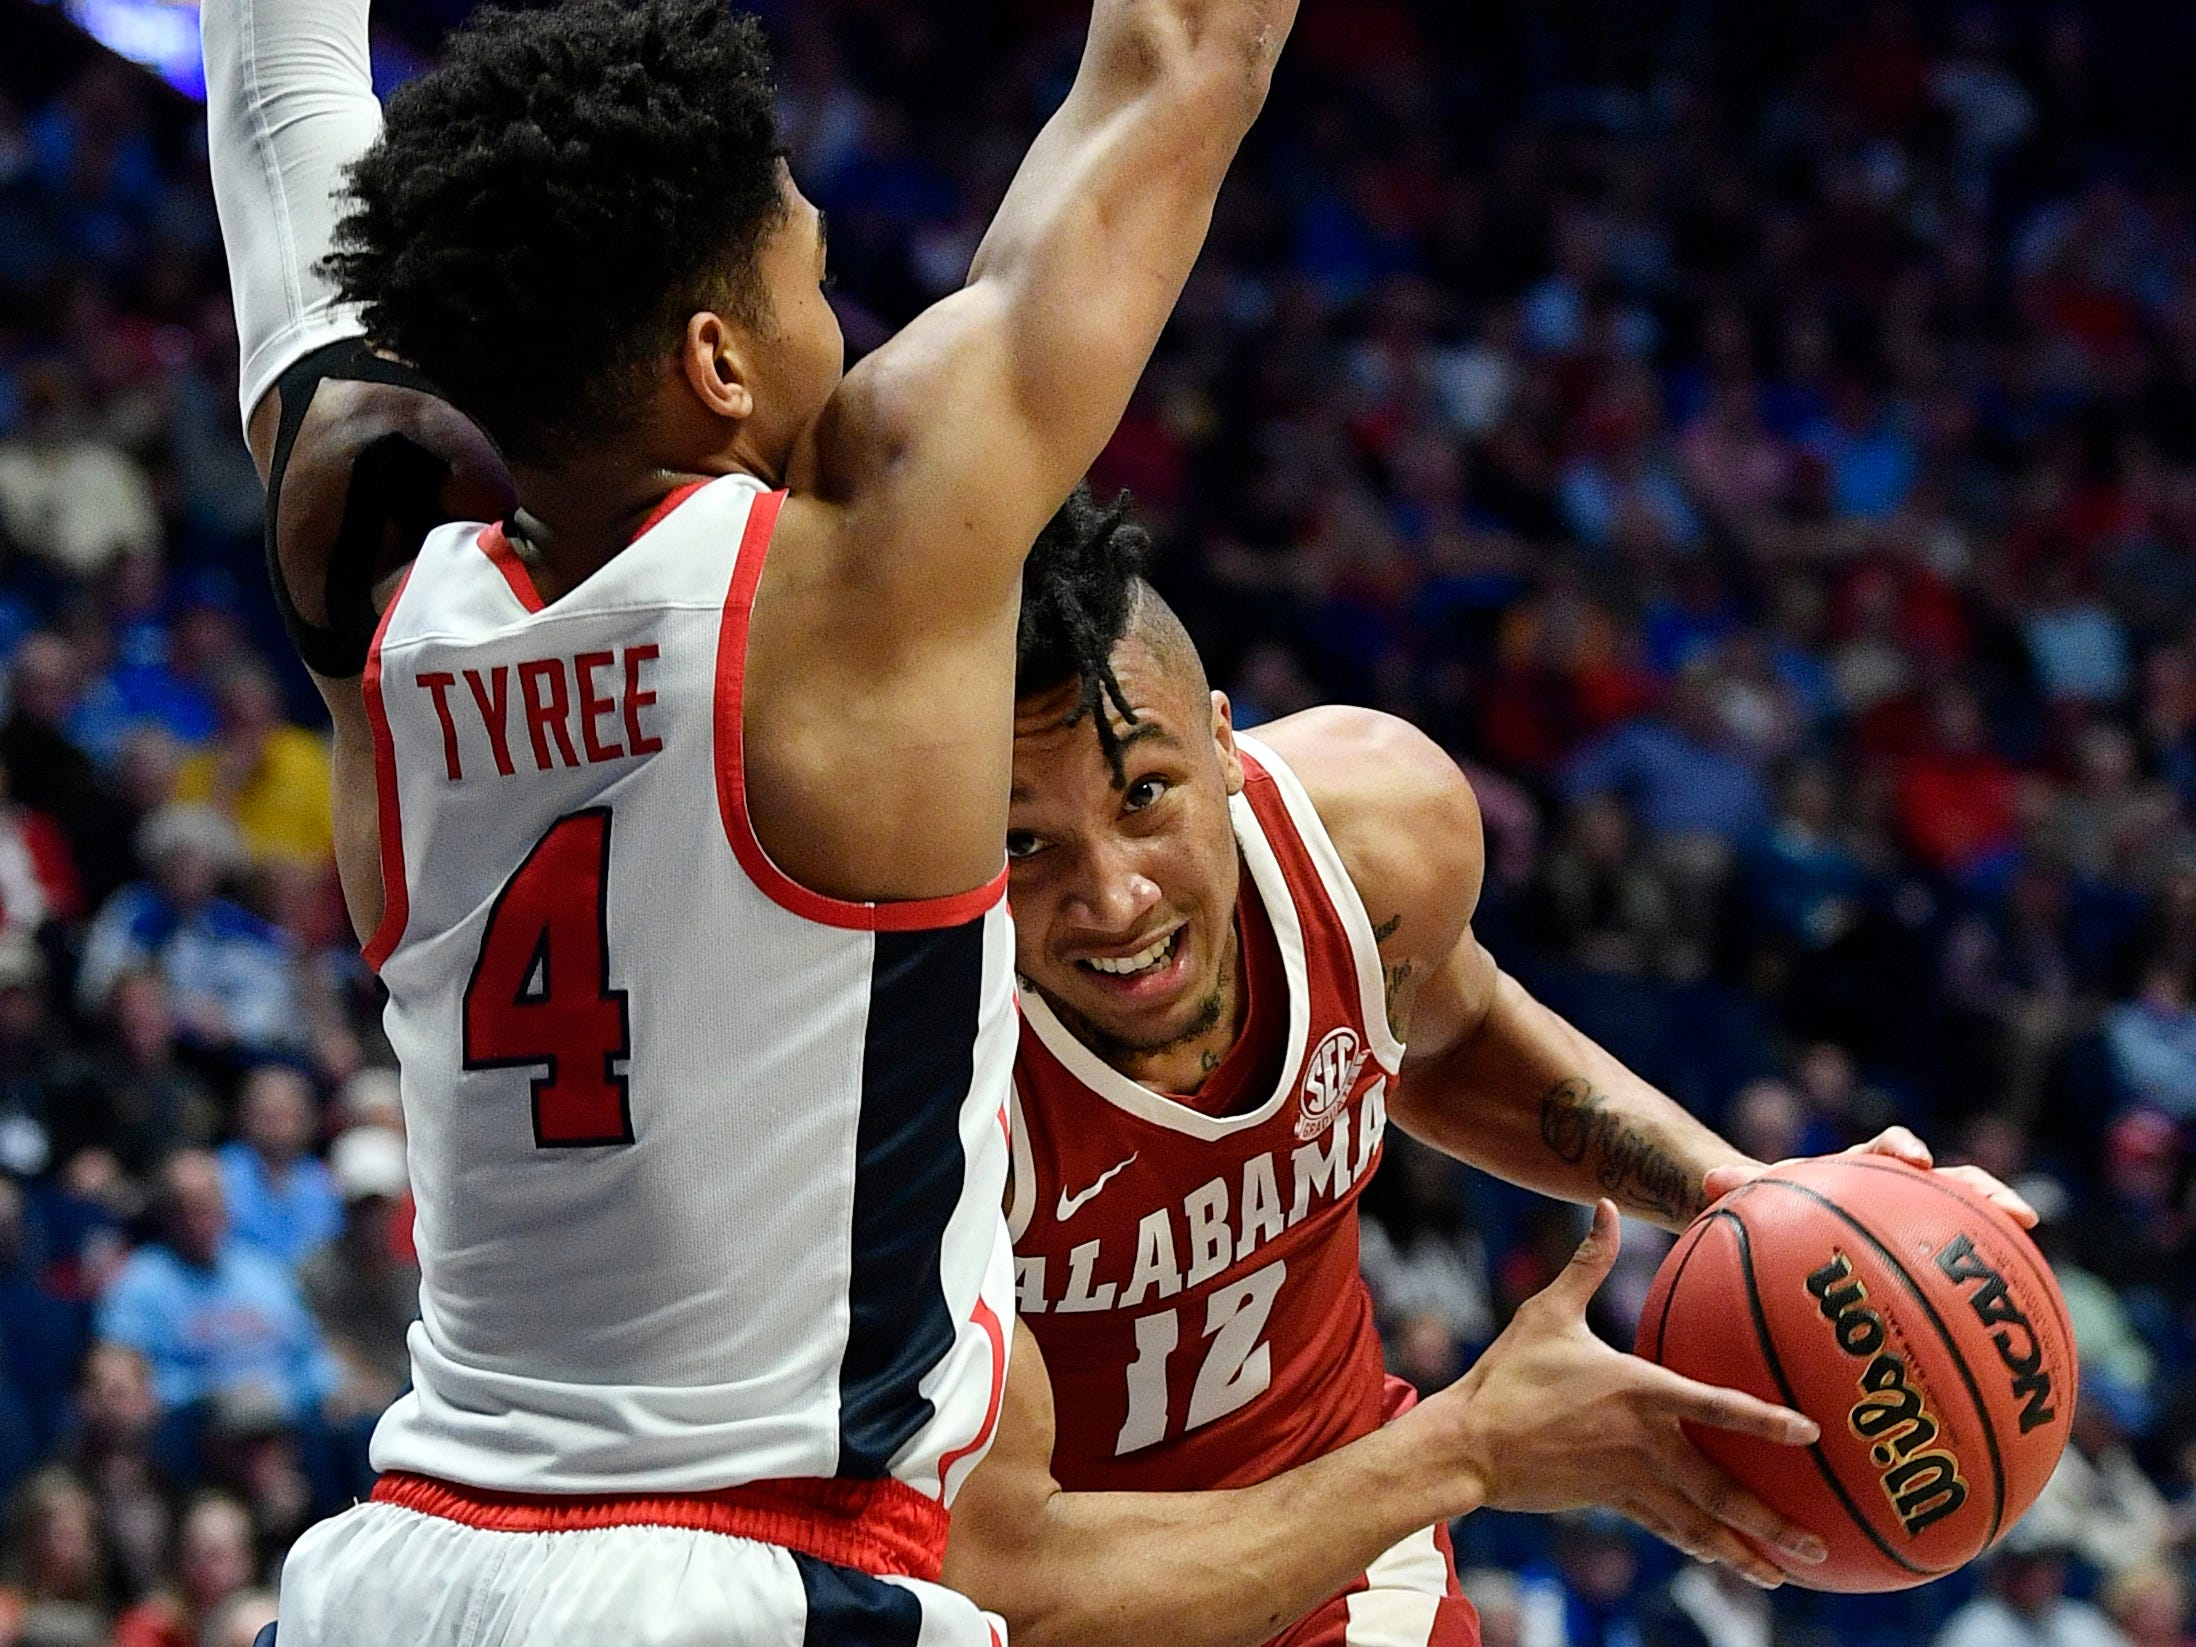 Alabama guard Dazon Ingram (12) tries to move the ball defended by Ole Miss guard Breein Tyree (4) during the first half of the SEC Men's Basketball Tournament game at Bridgestone Arena in Nashville, Tenn., Thursday, March 14, 2019.